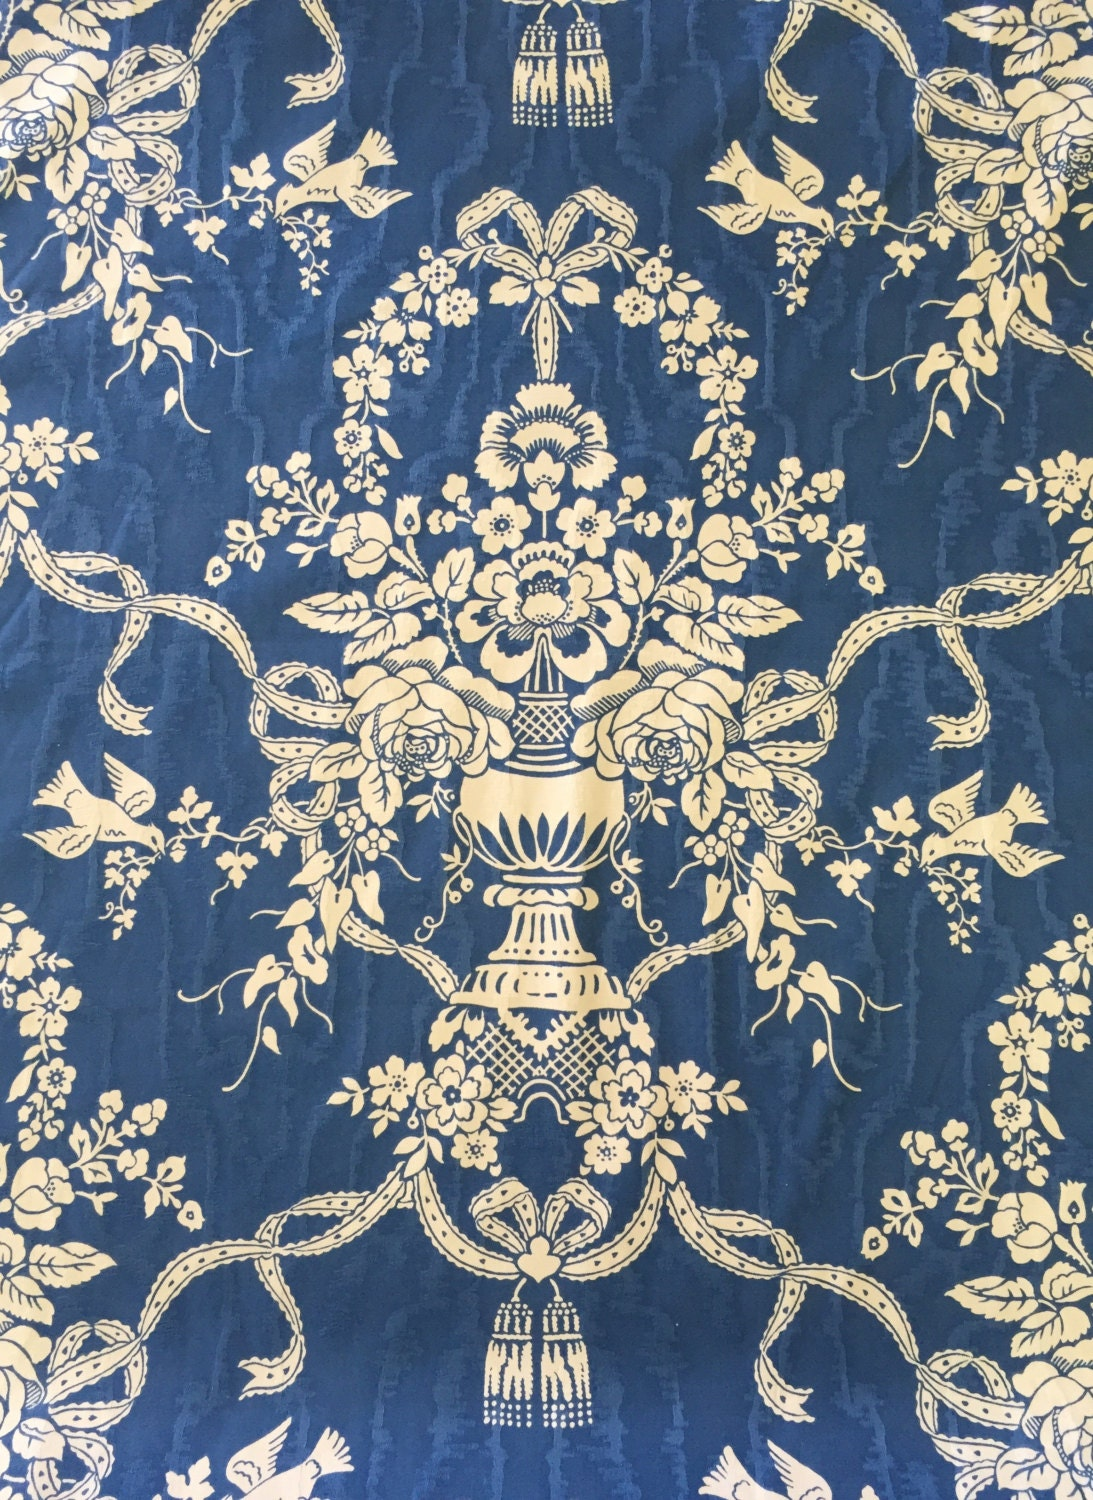 Blue Floral Damask Upholstery Fabric By The Yard